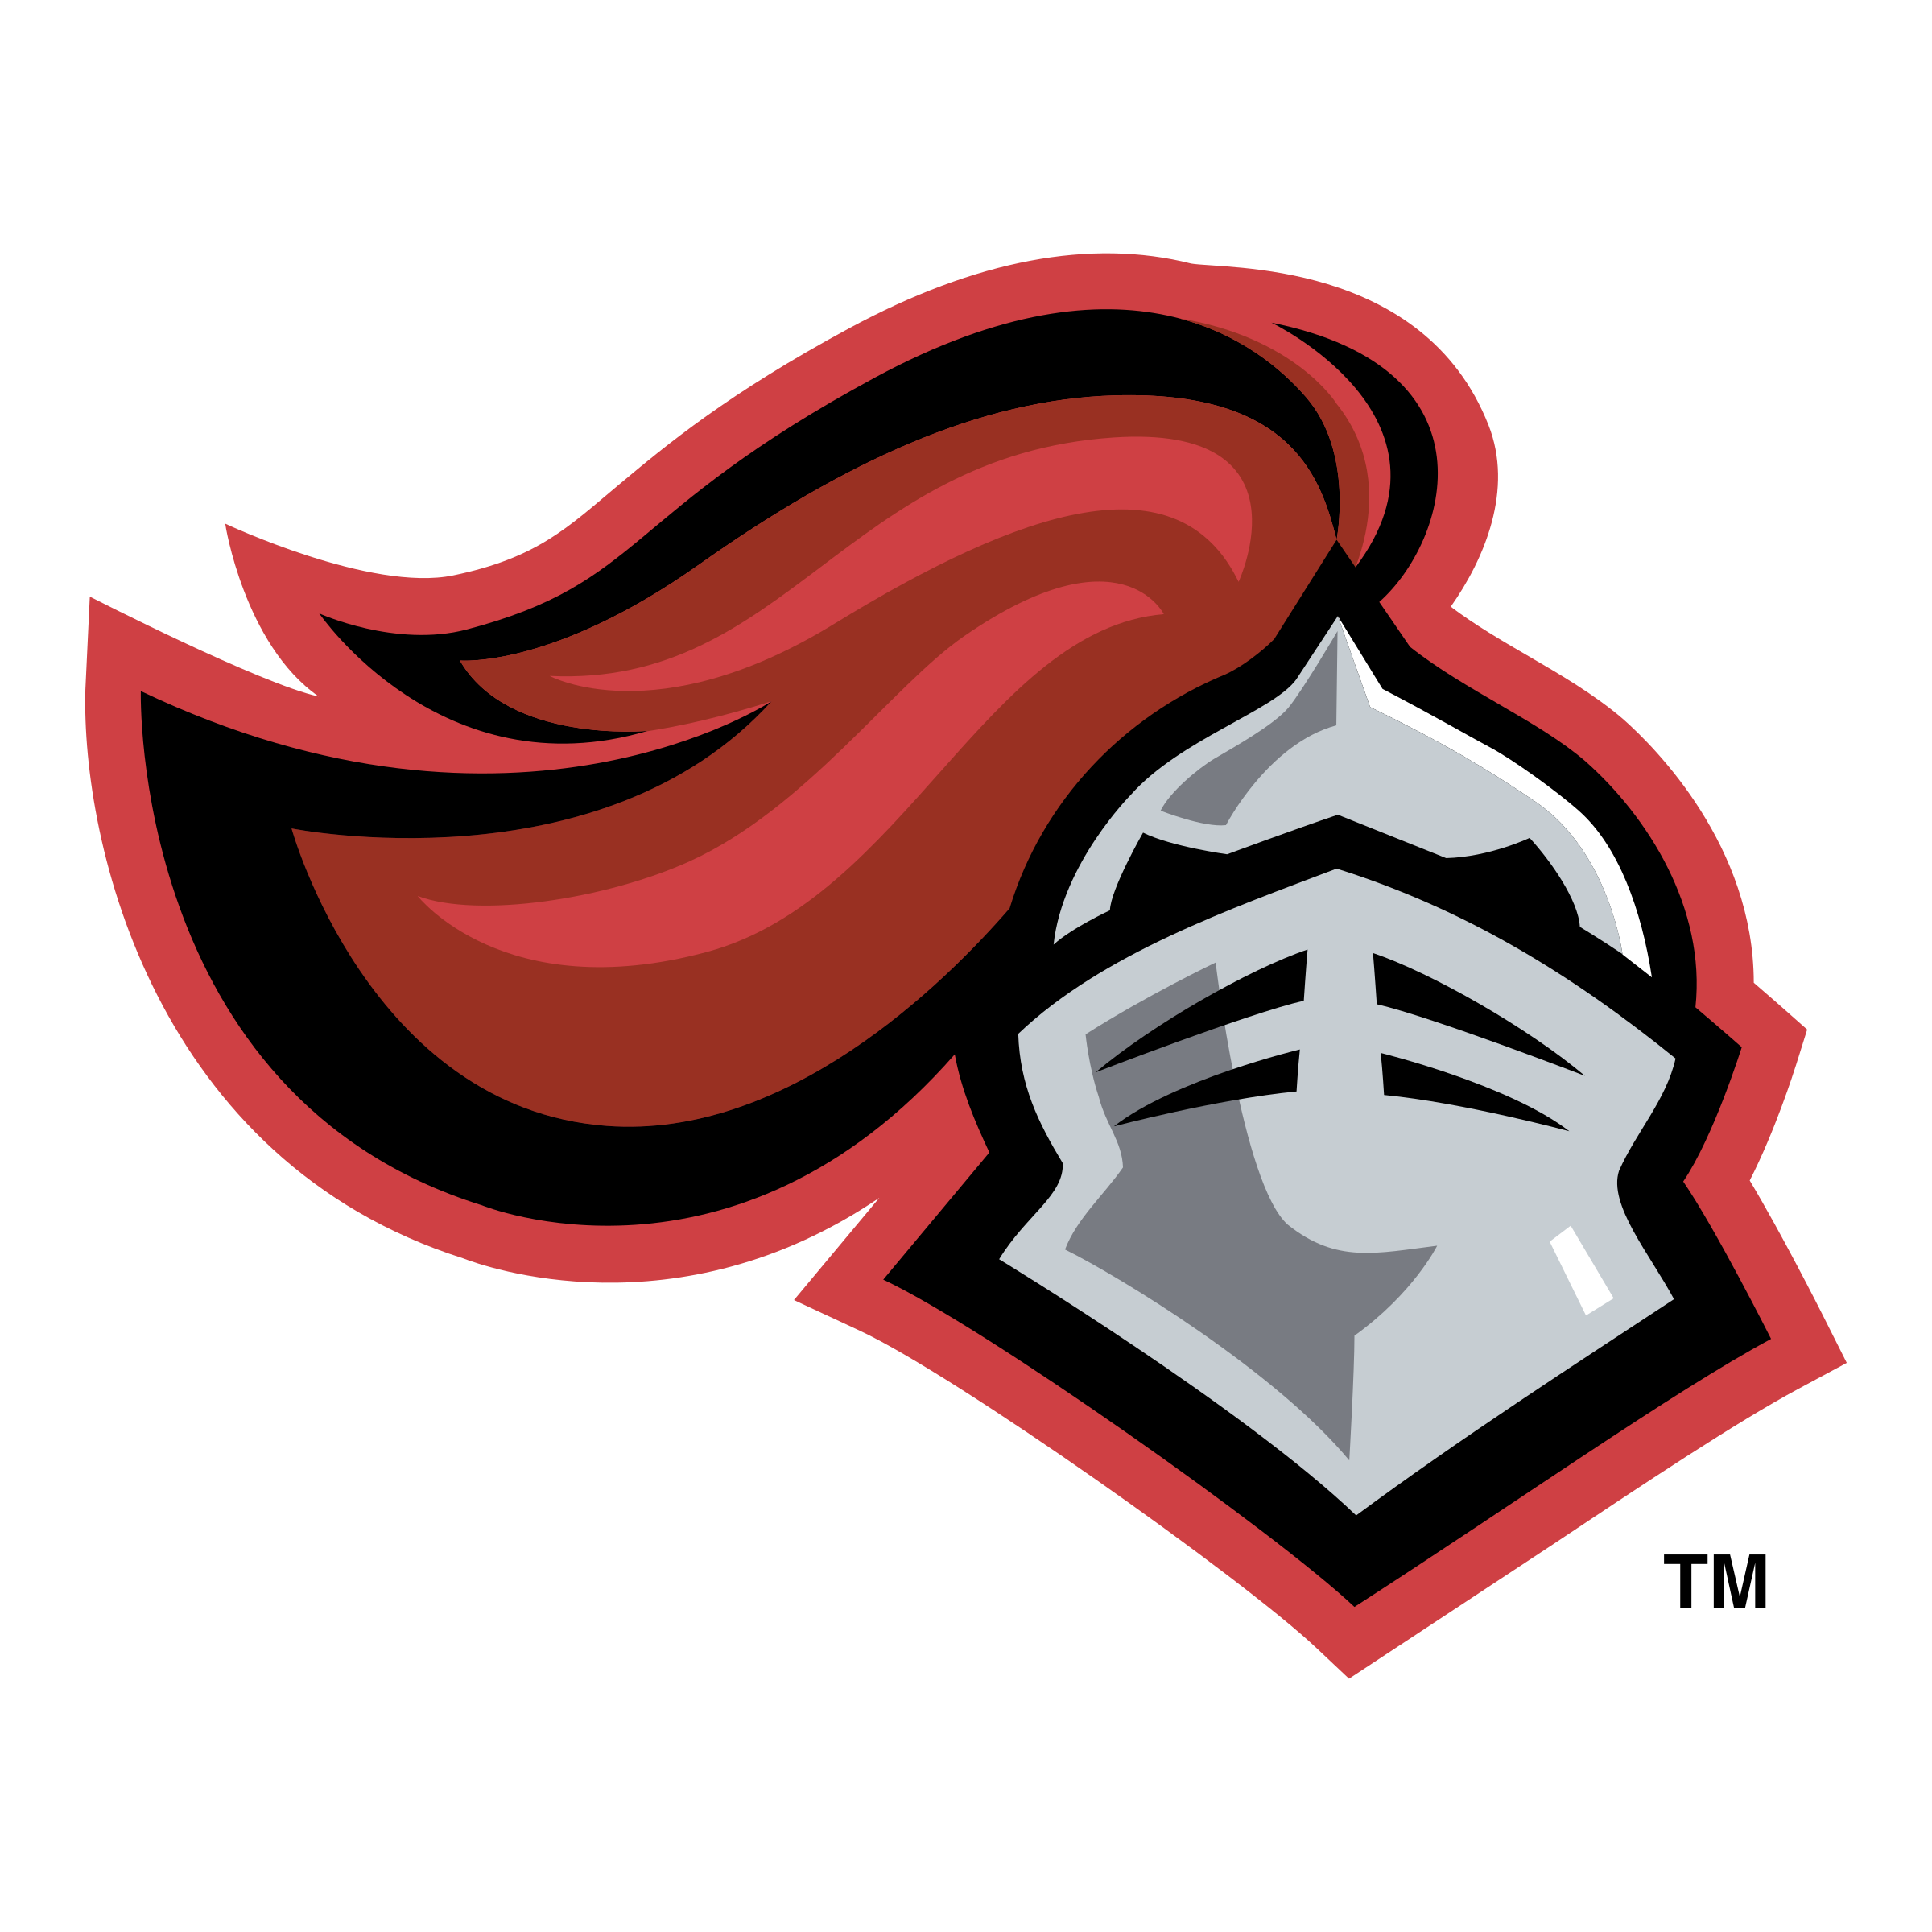 Knight logo png. Rutgers scarlet knights transparent